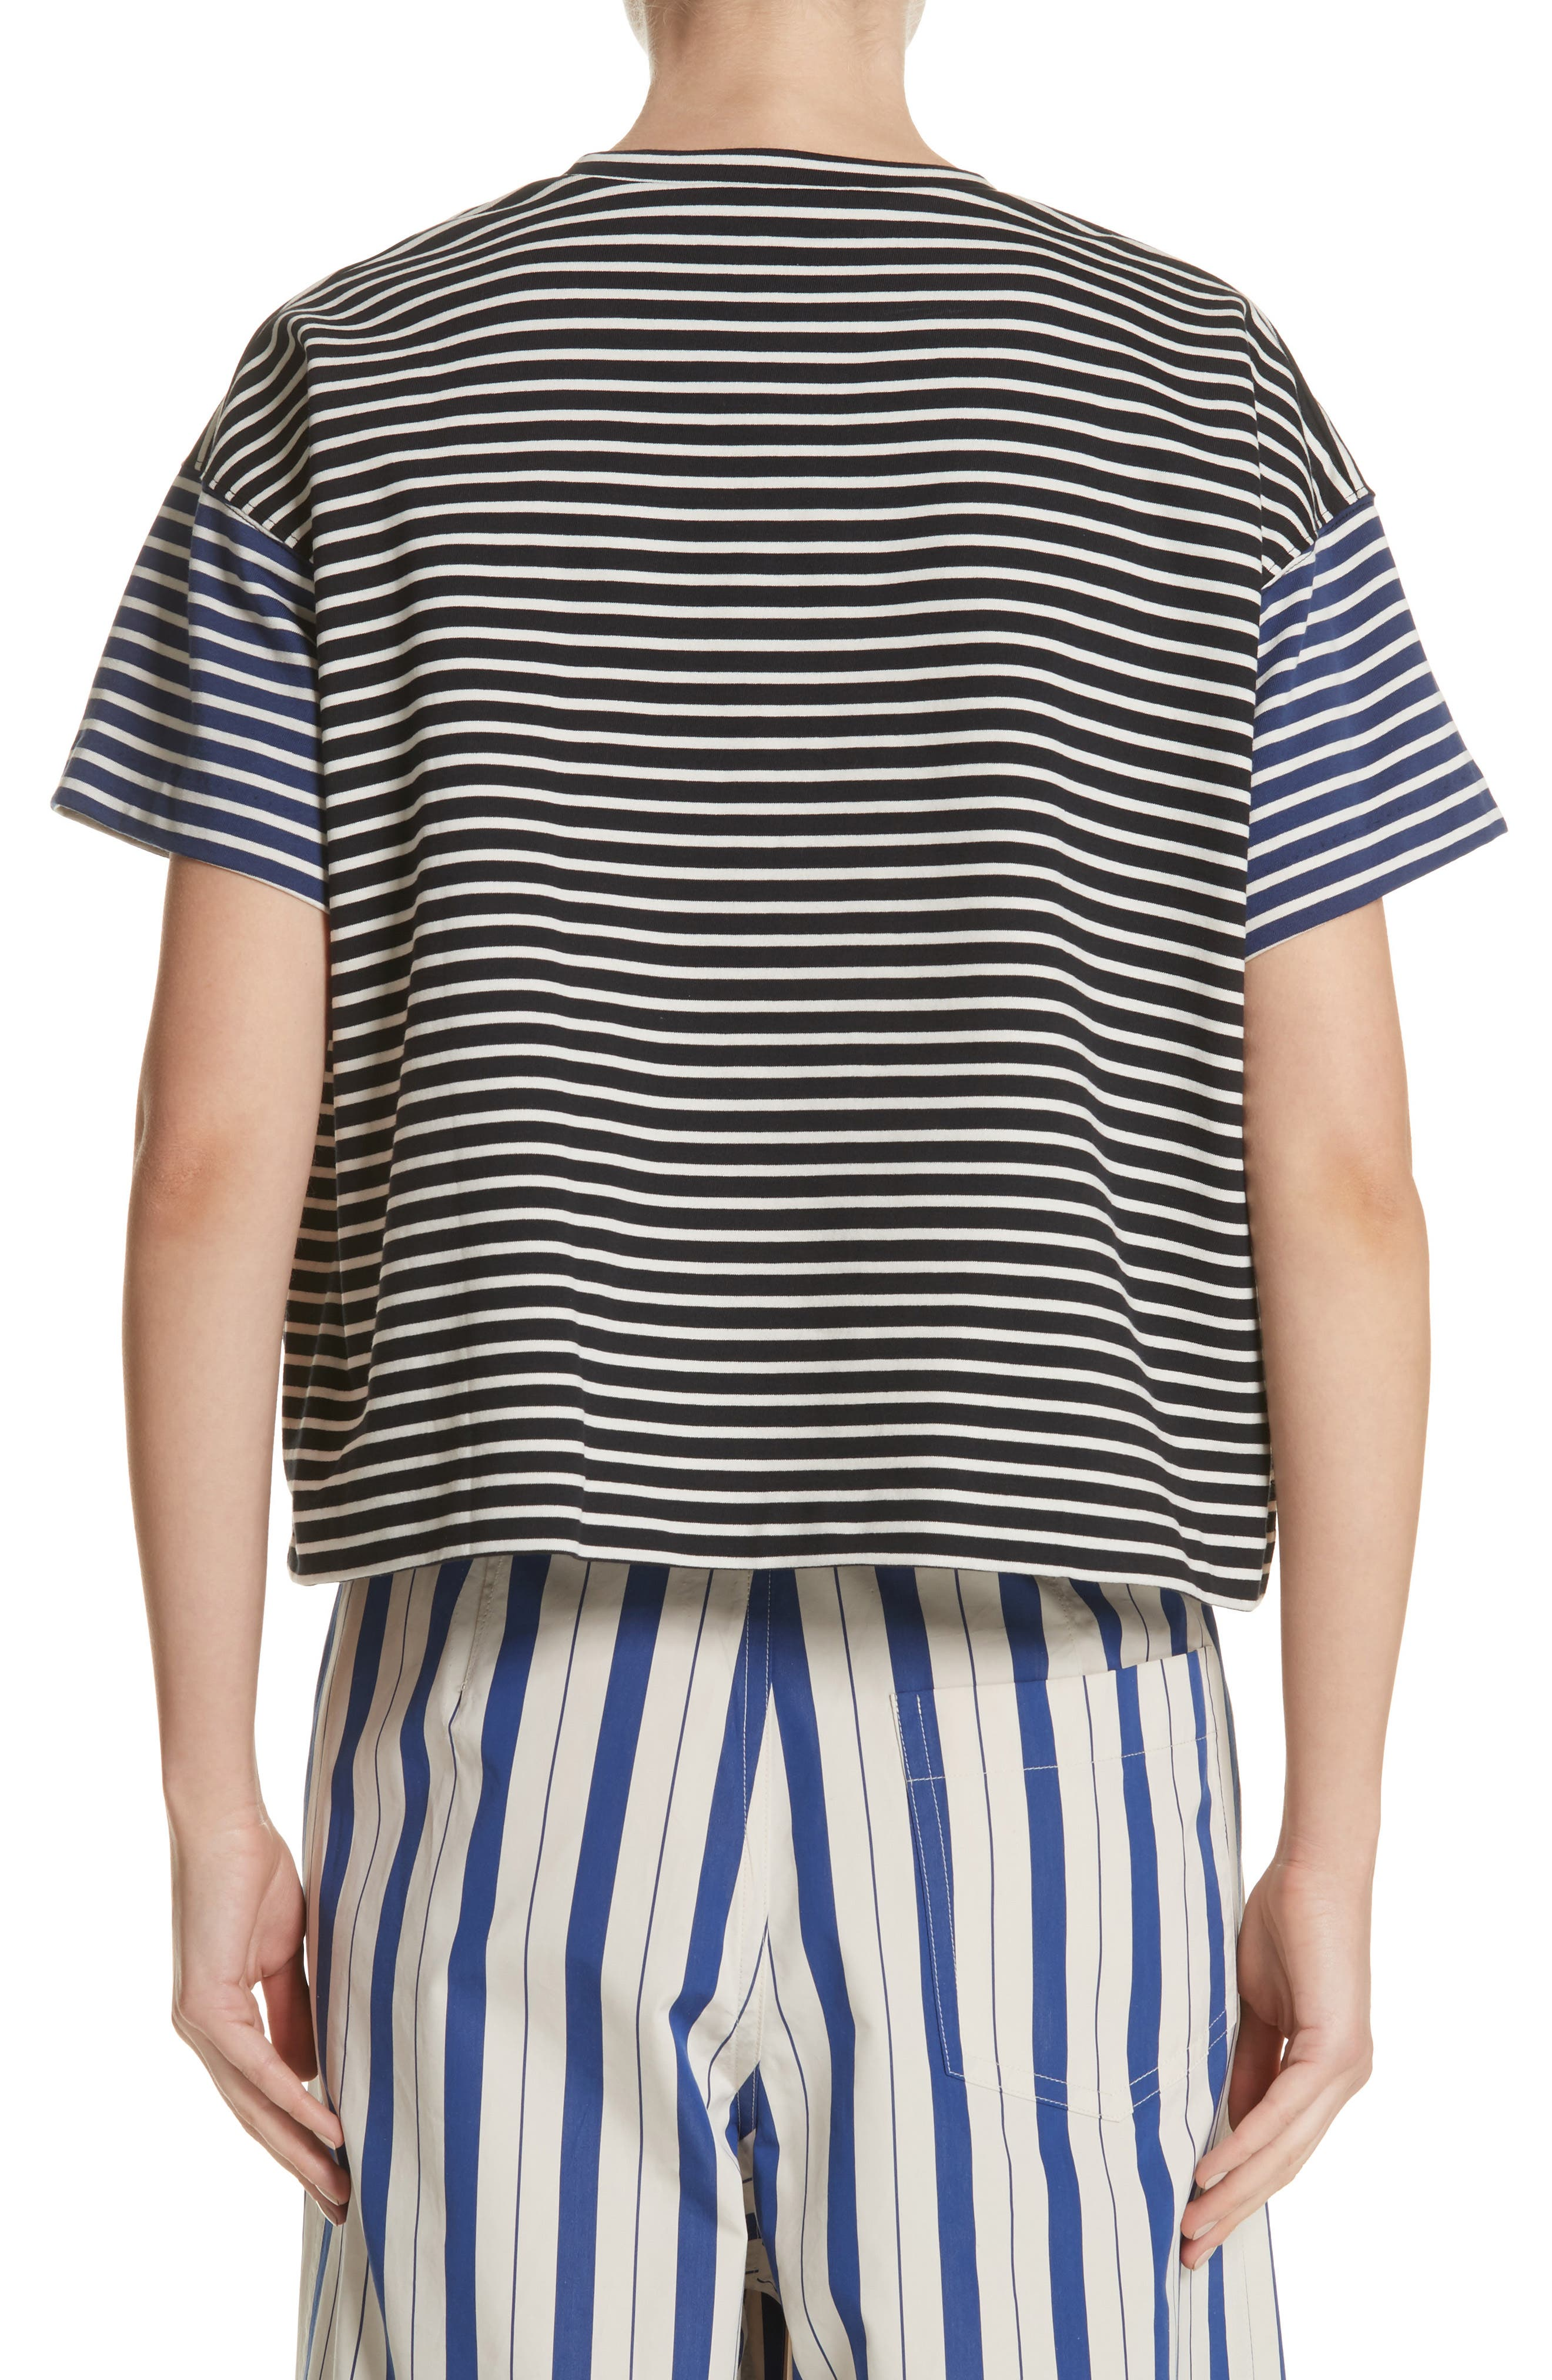 Nautical Stripe Tee,                             Alternate thumbnail 2, color,                             1 Navy/ Blumarine